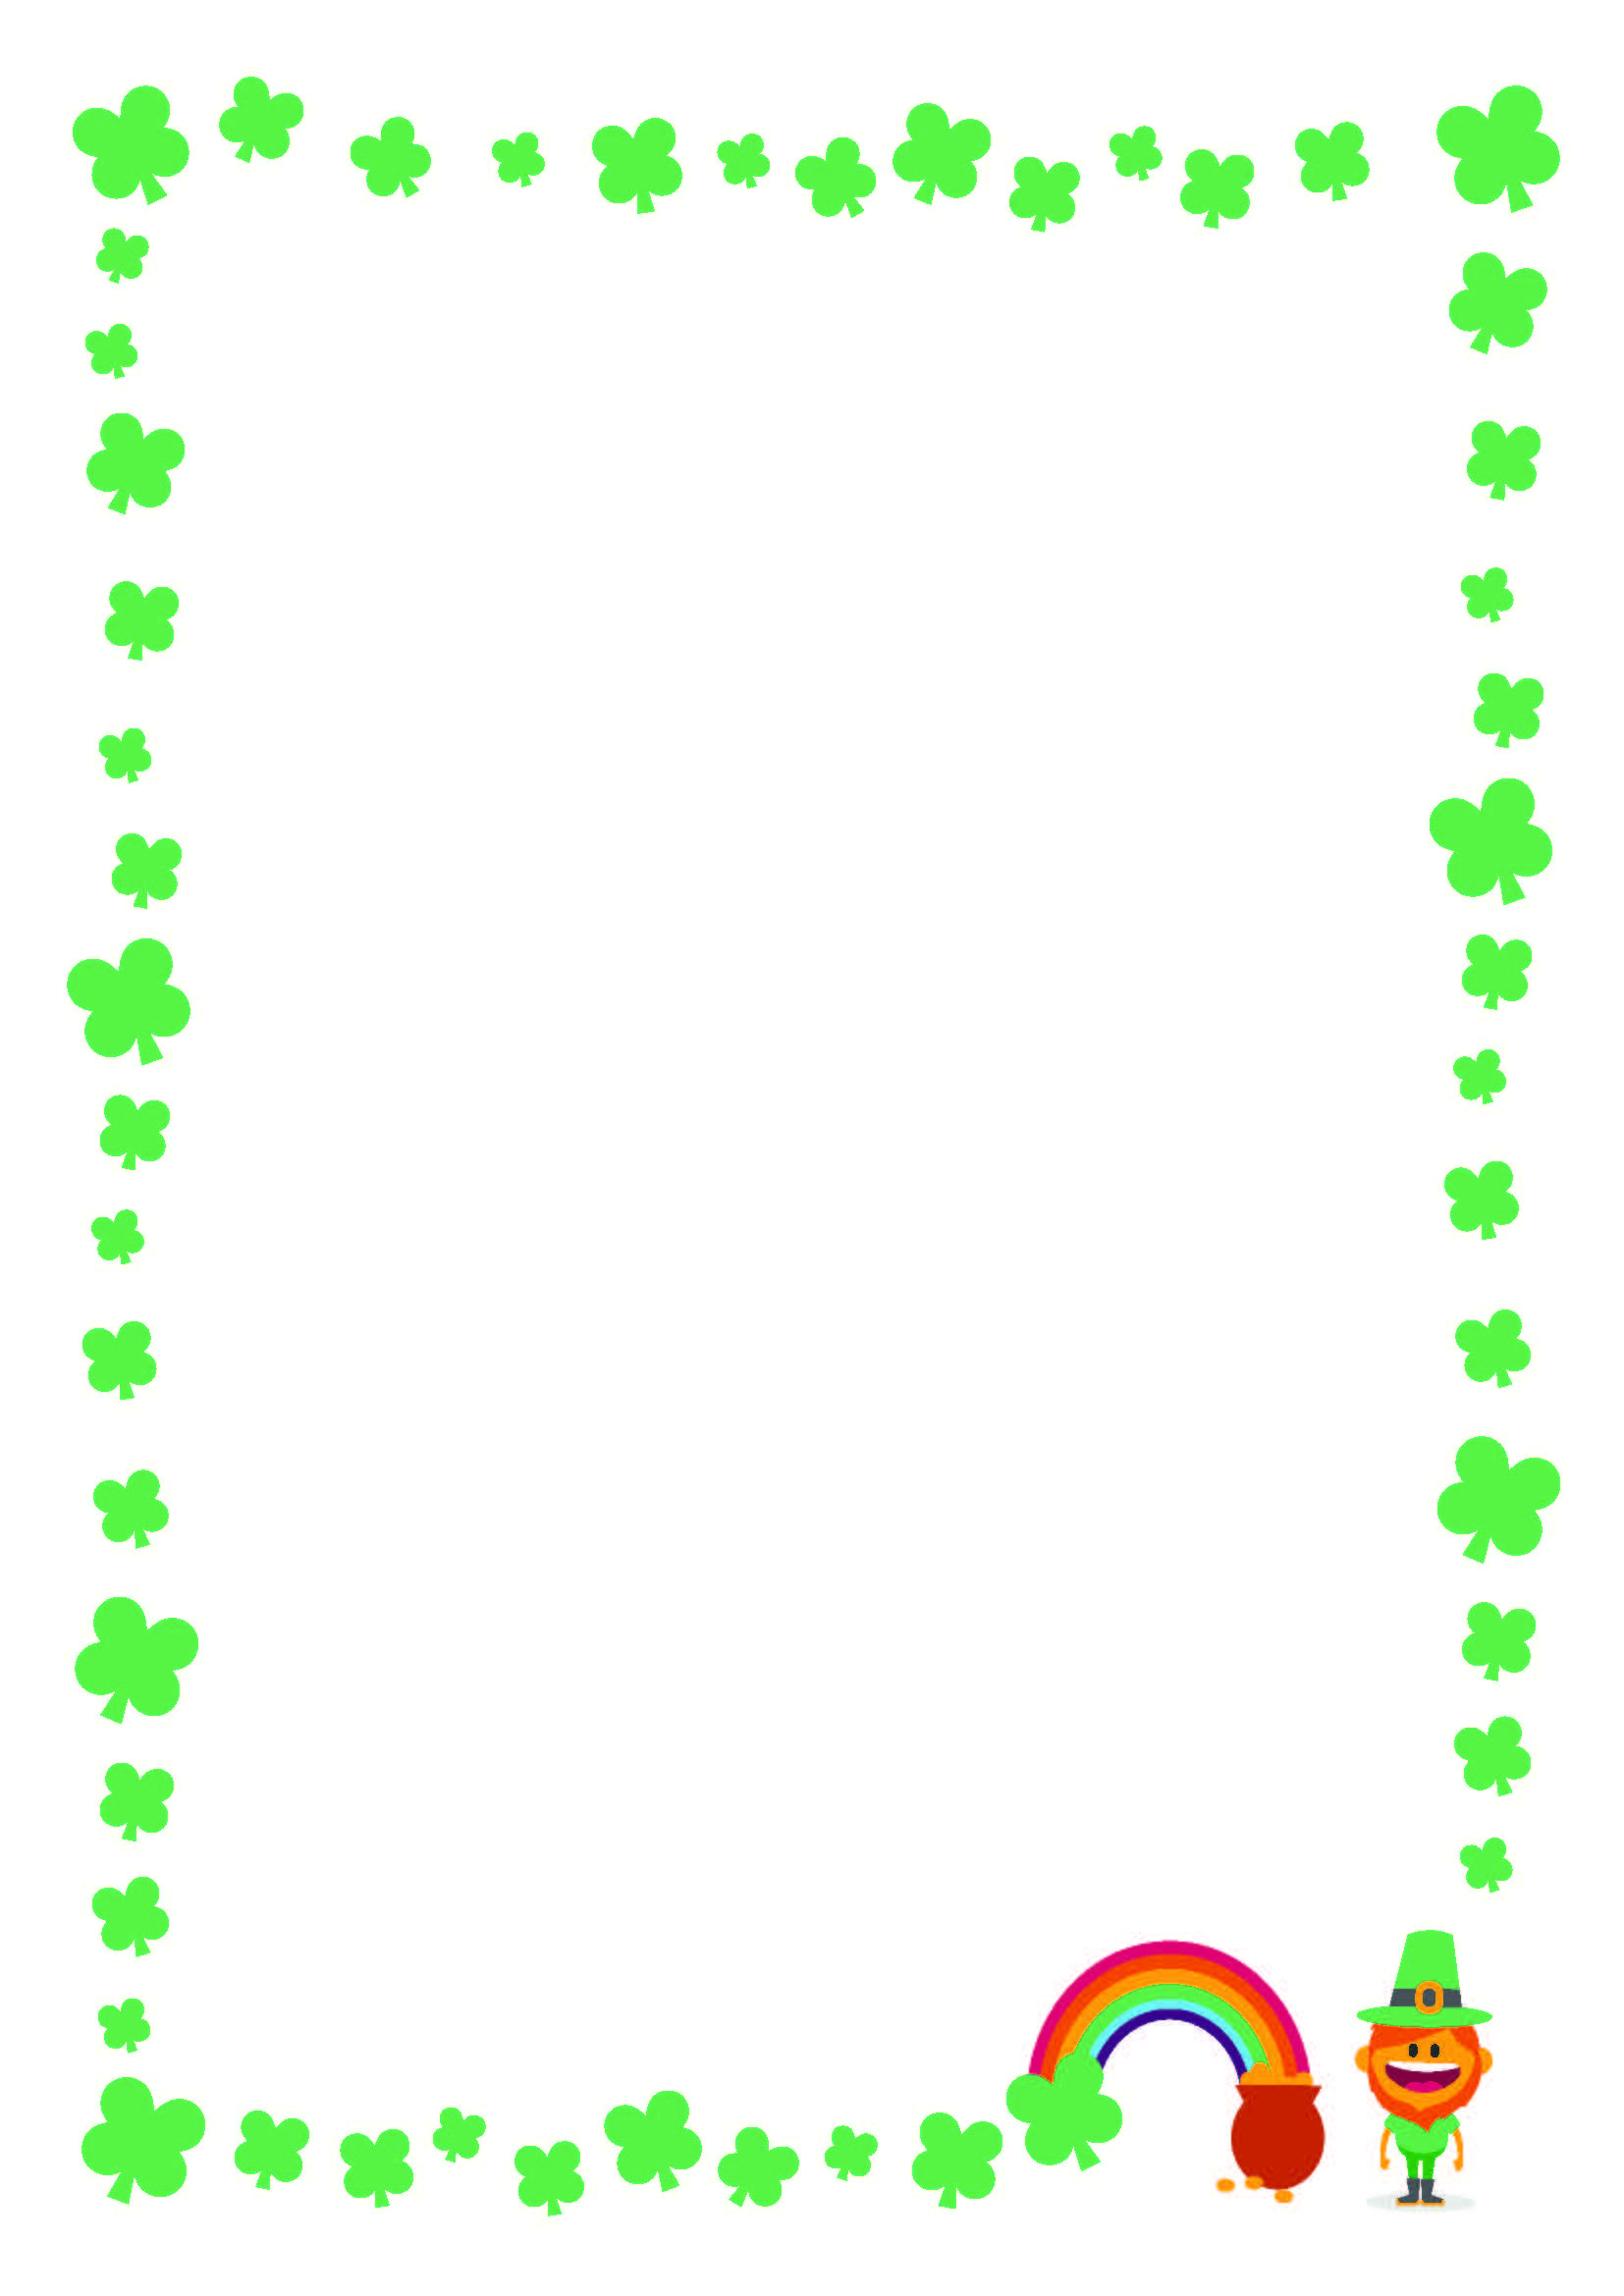 Free St. Patrick's Day Printable Writing Paper With Clover Border - Free Printable Writing Paper With Borders